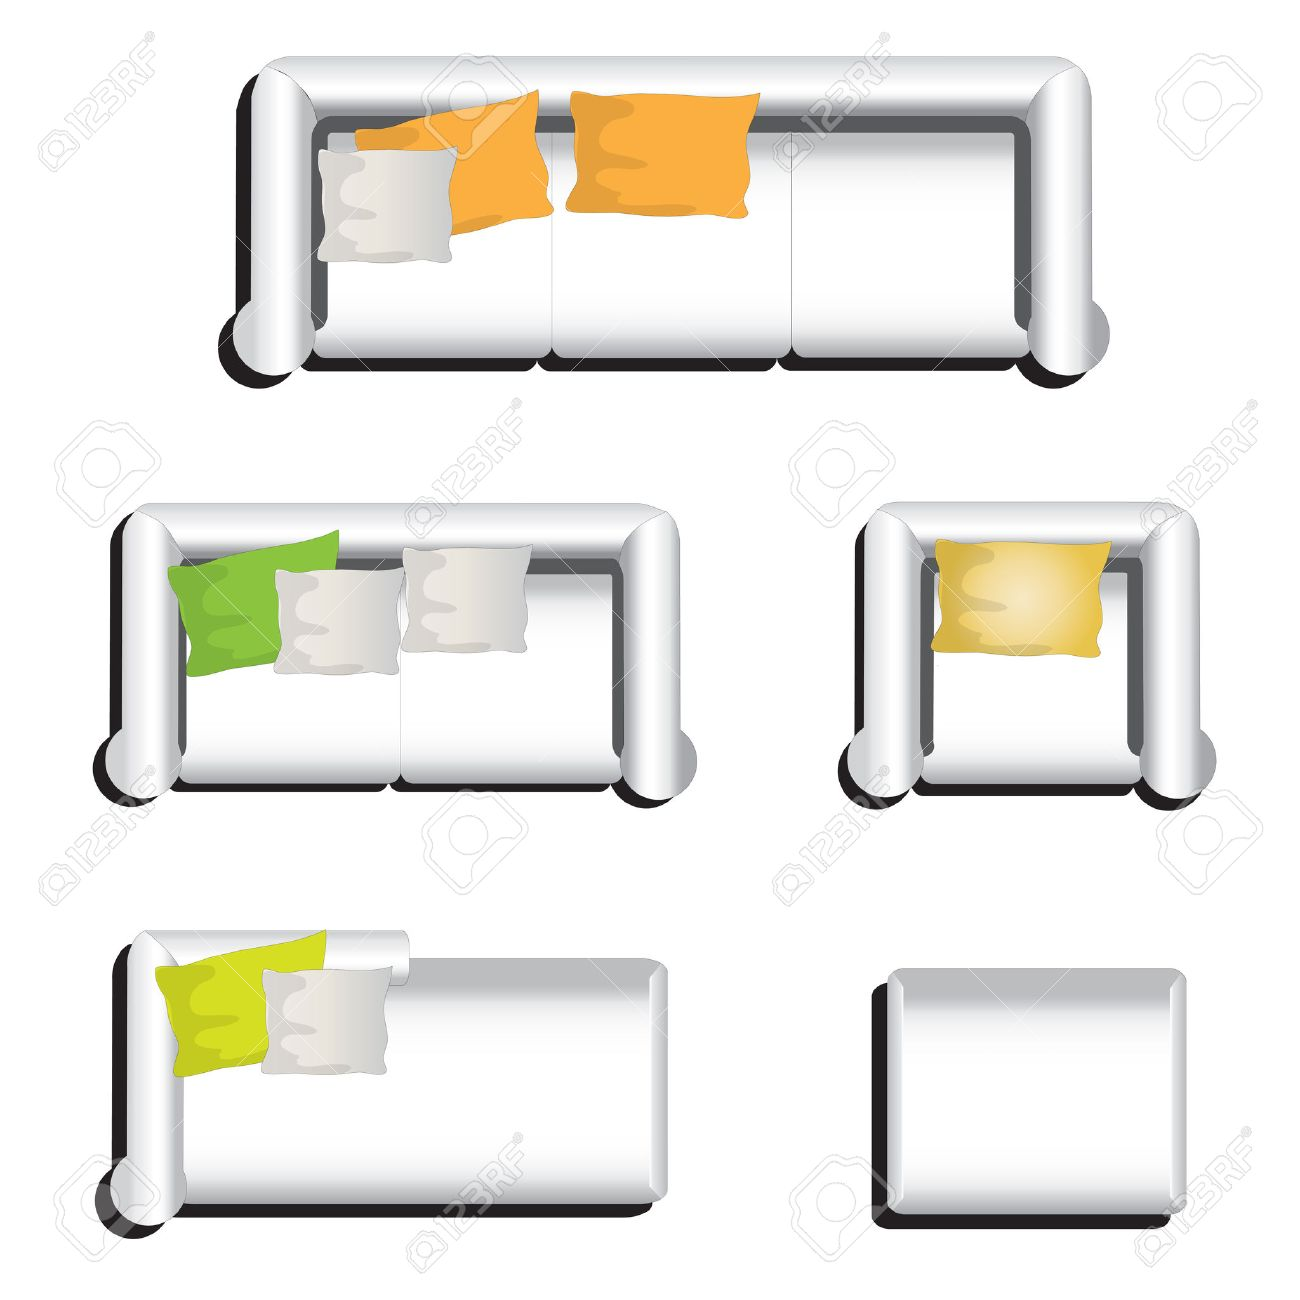 Furniture Top View Set 31 For Interior Vector Illustration